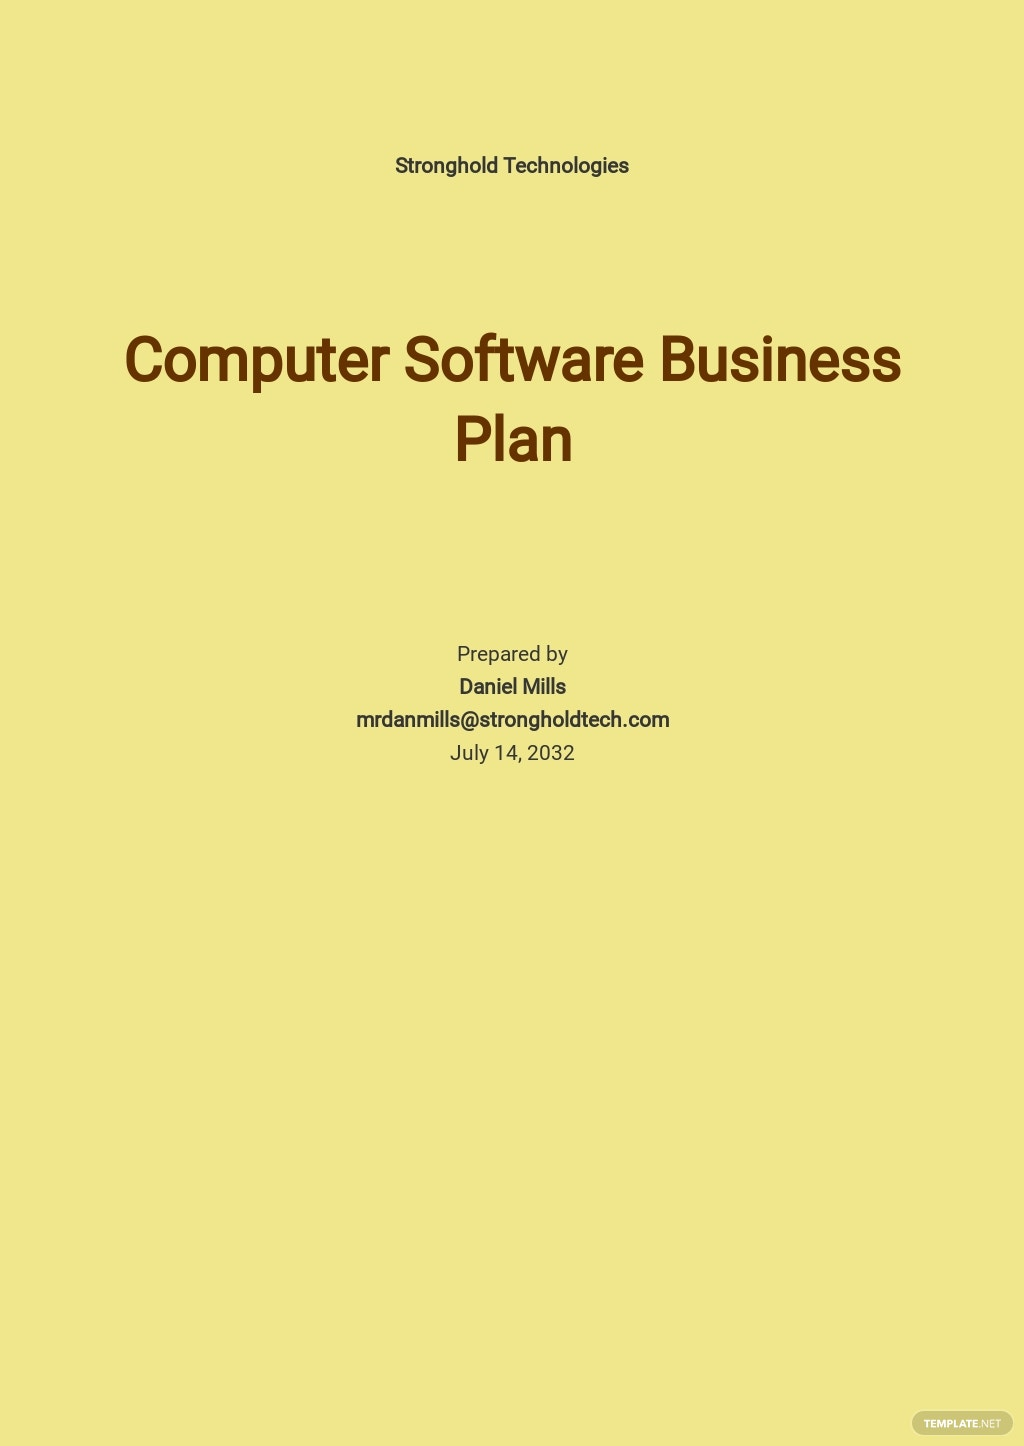 Computer Software Business Plan Template